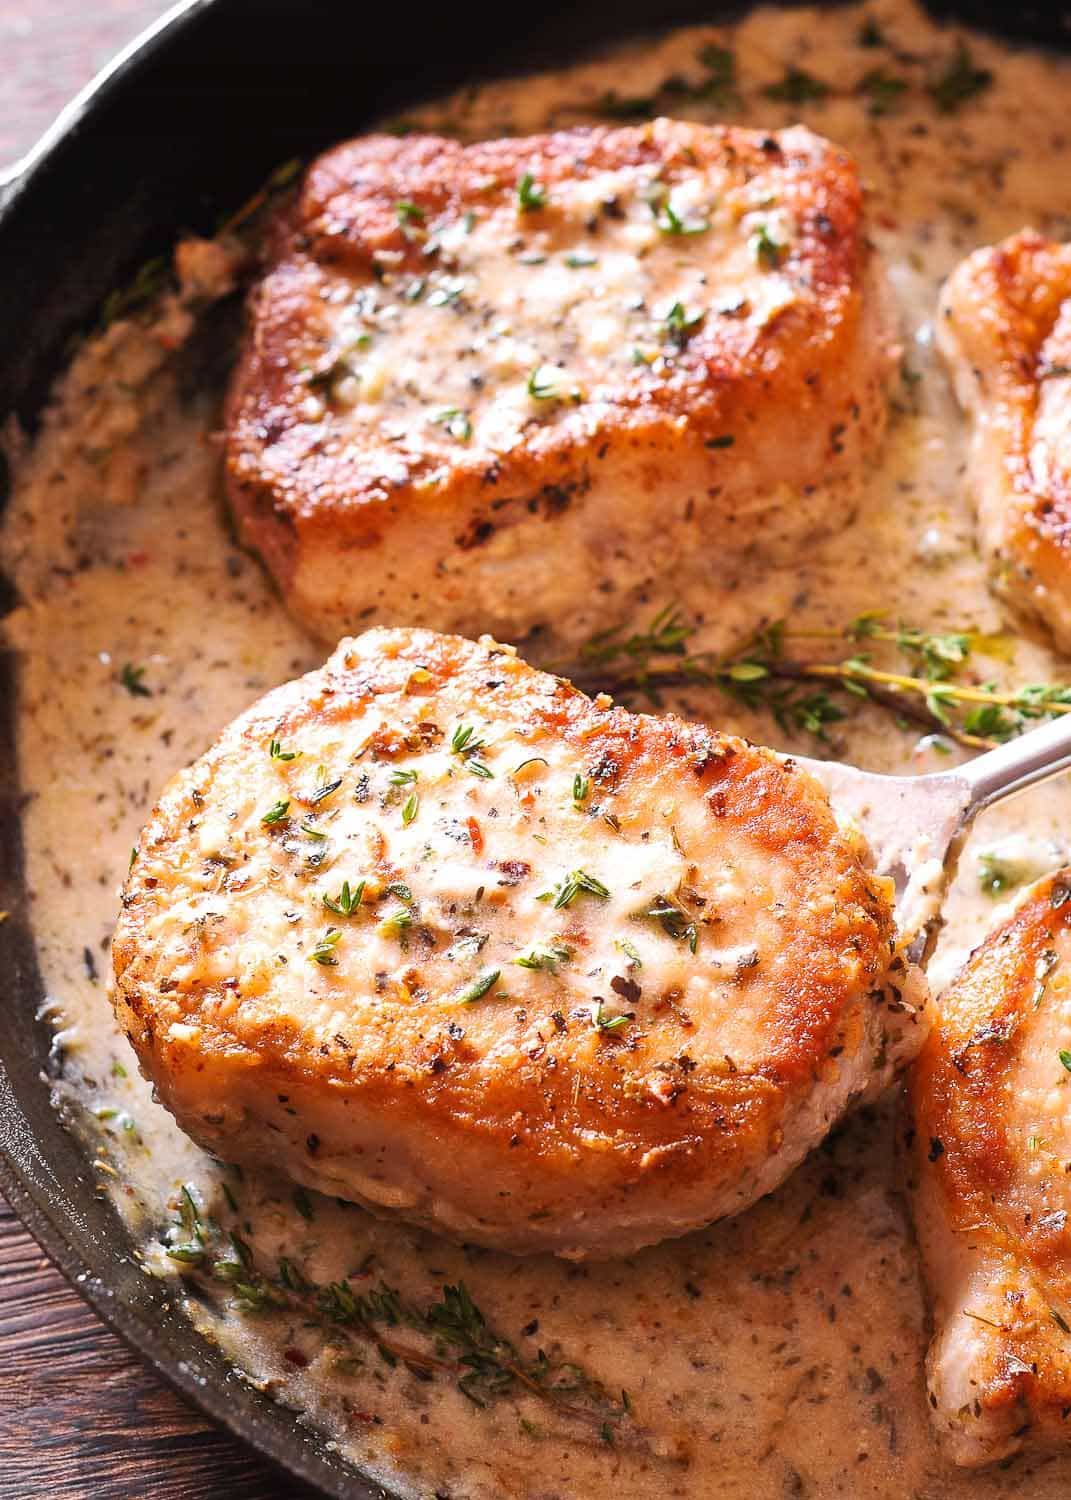 Boneless Pork Chops in Creamy Garlic and Herb Wine Sauce